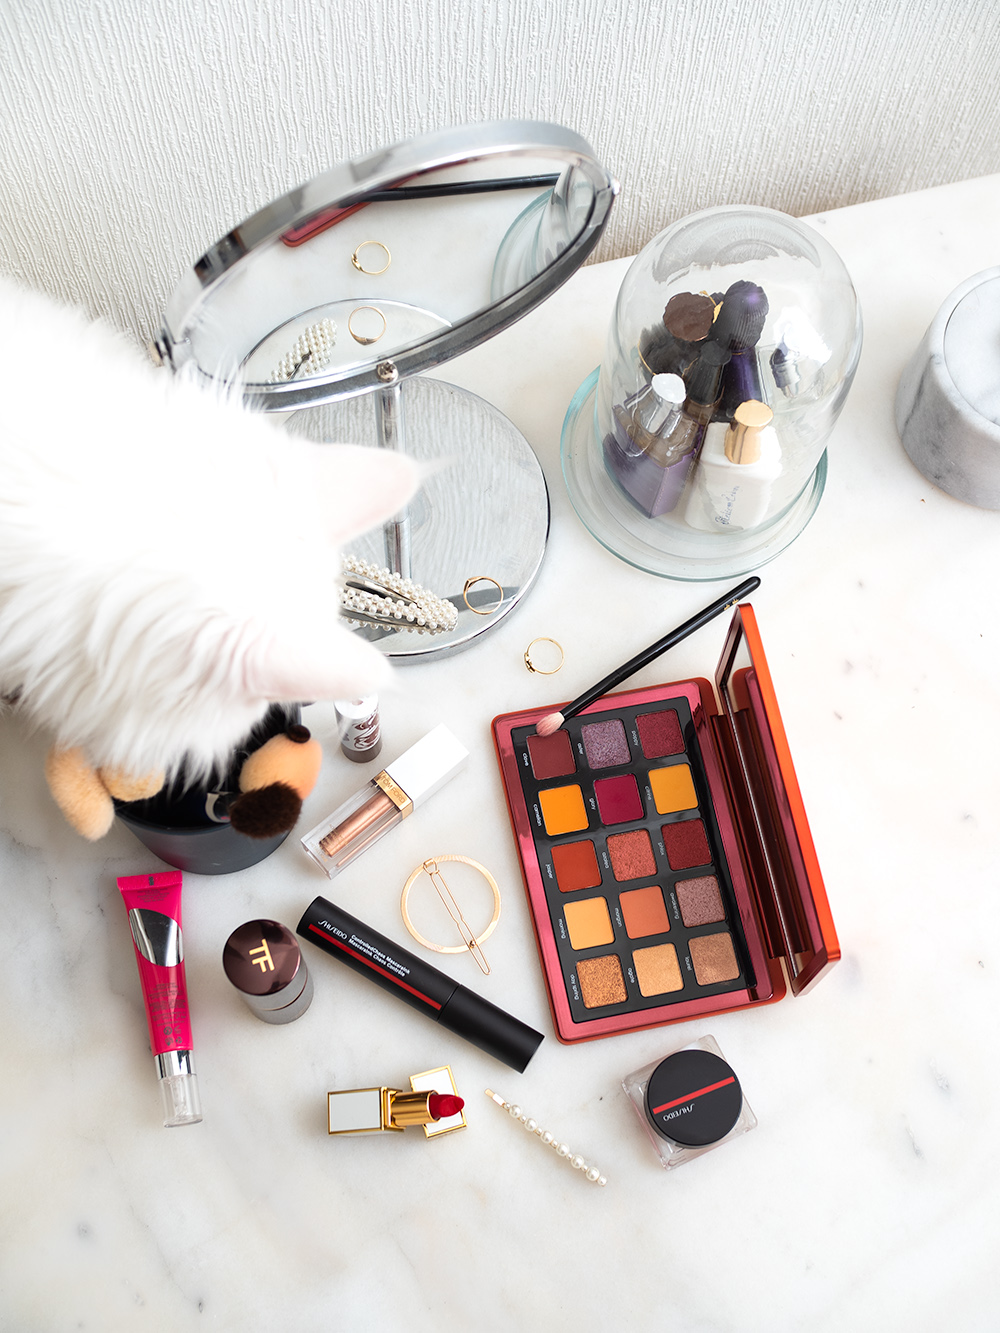 Makeup Therapy Routine | Laura Loukola Beauty Blog @laurantaina